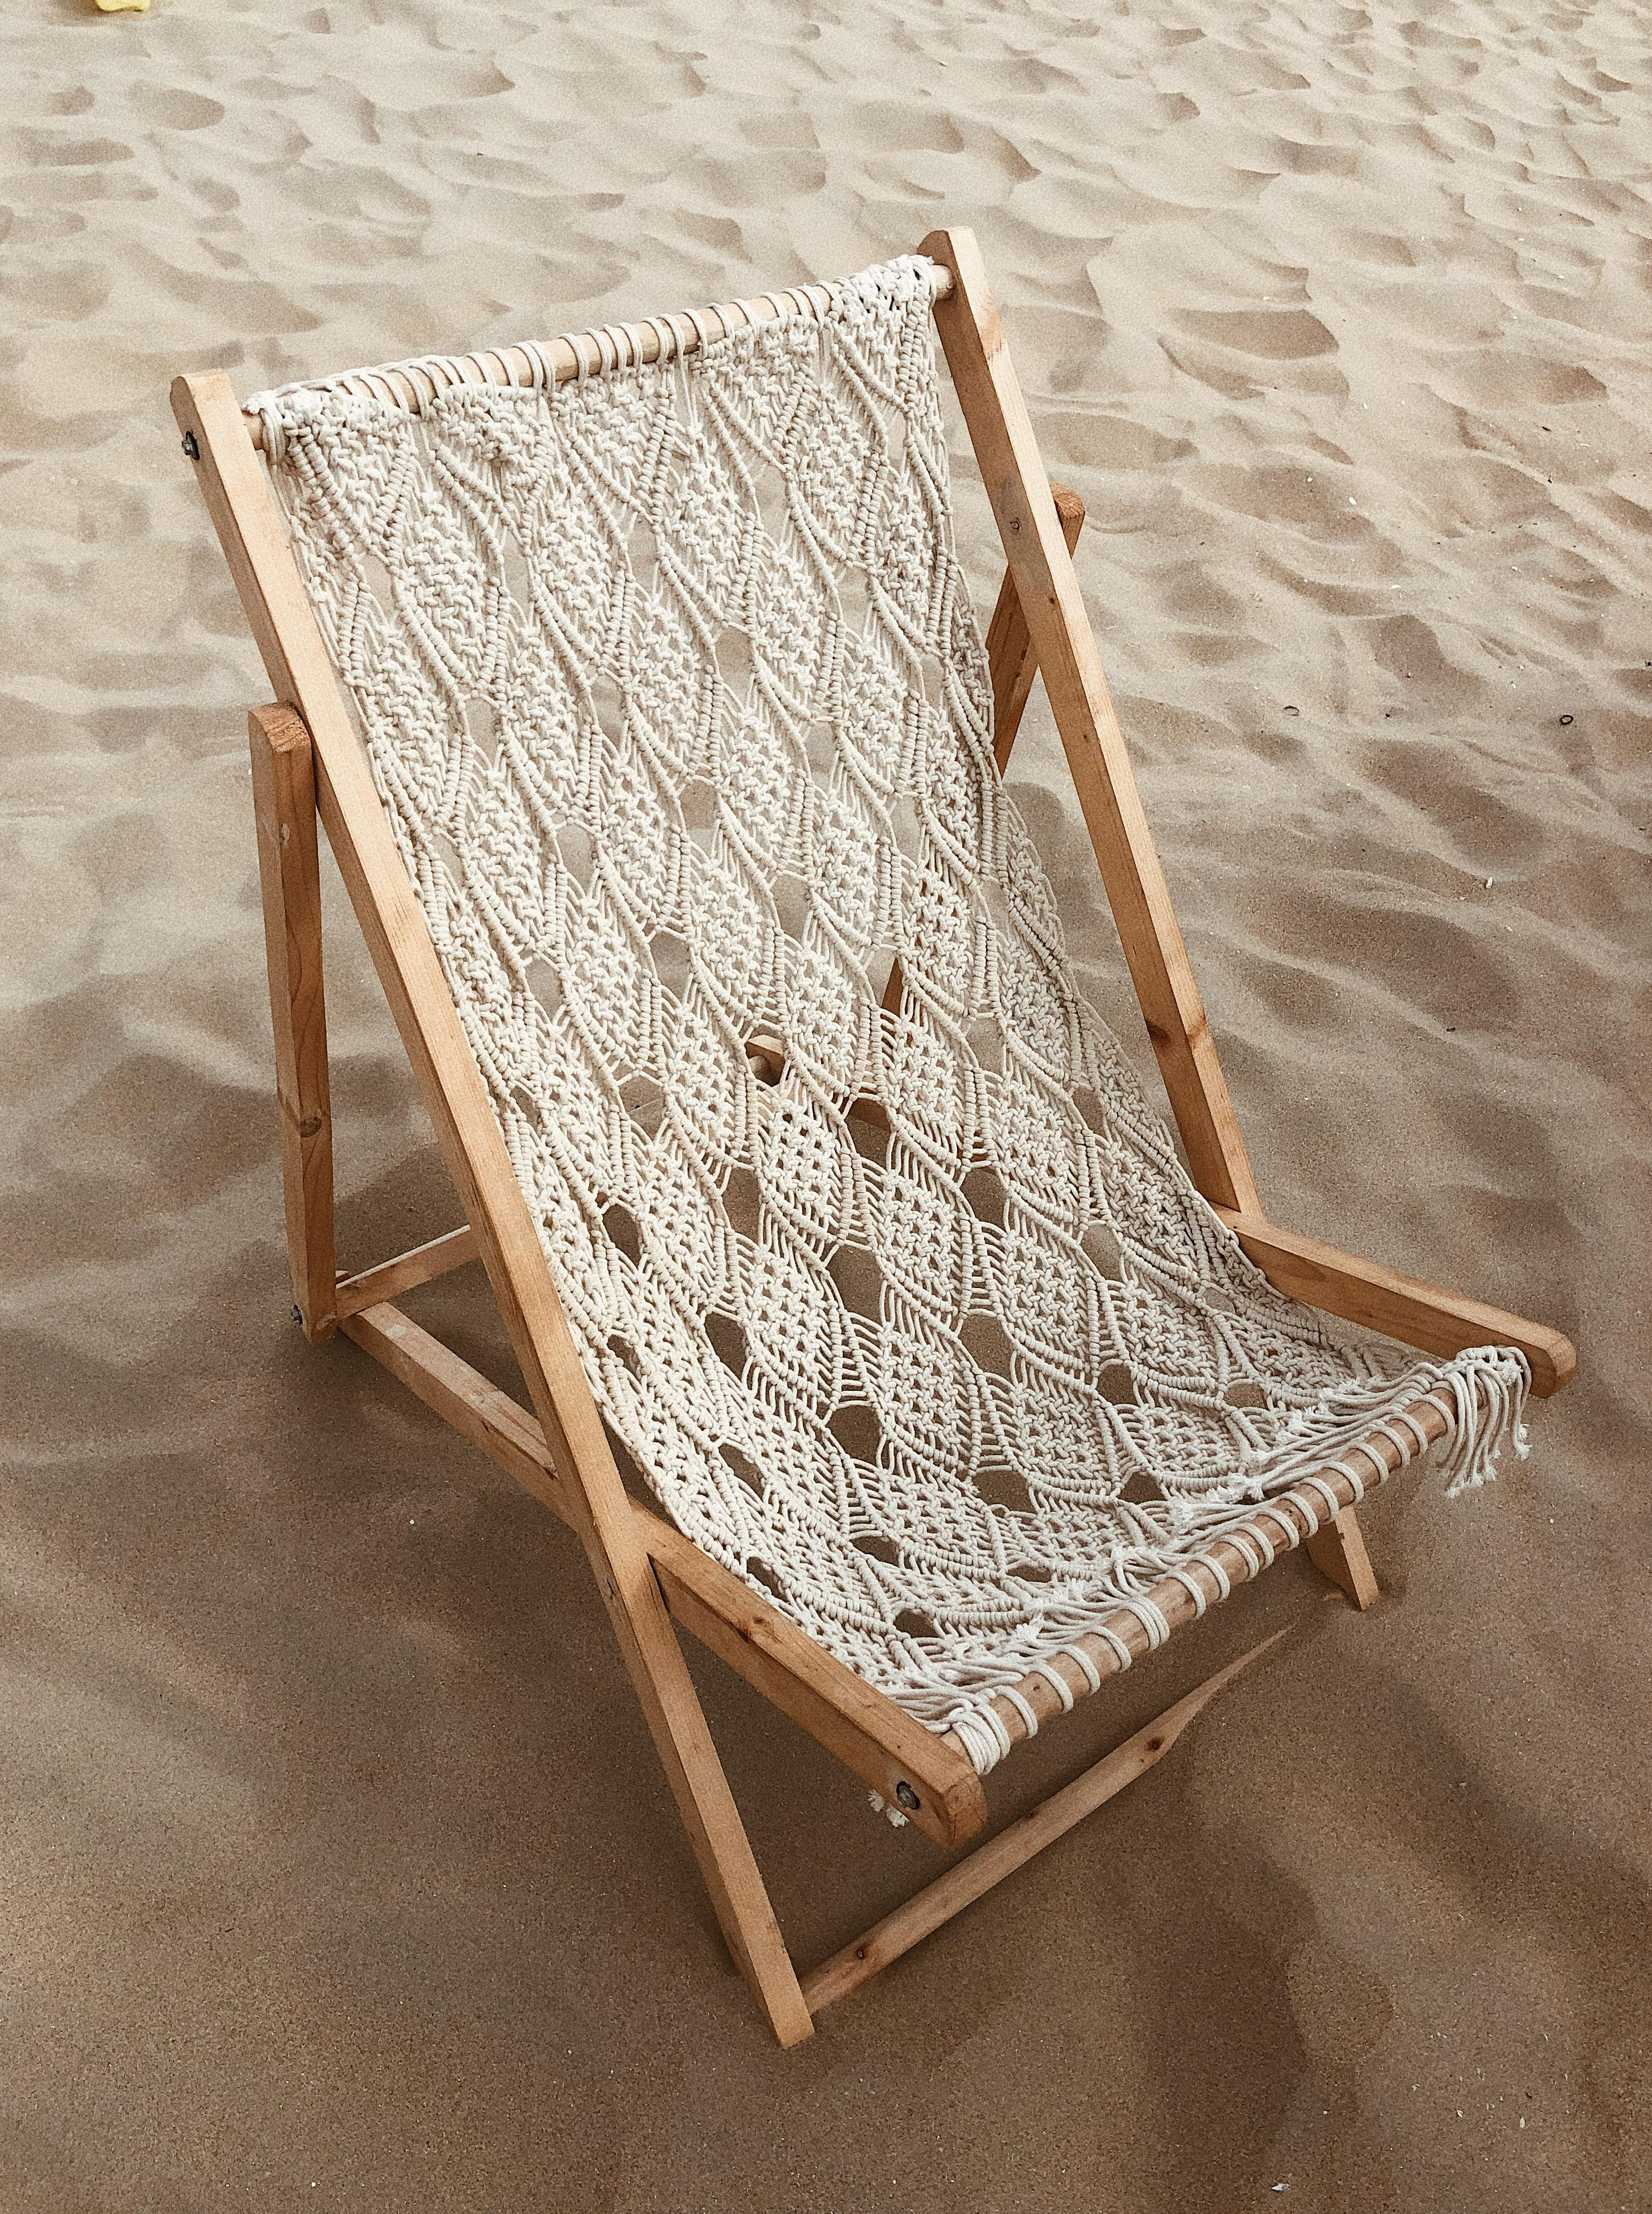 #bohostyle #beachchaire